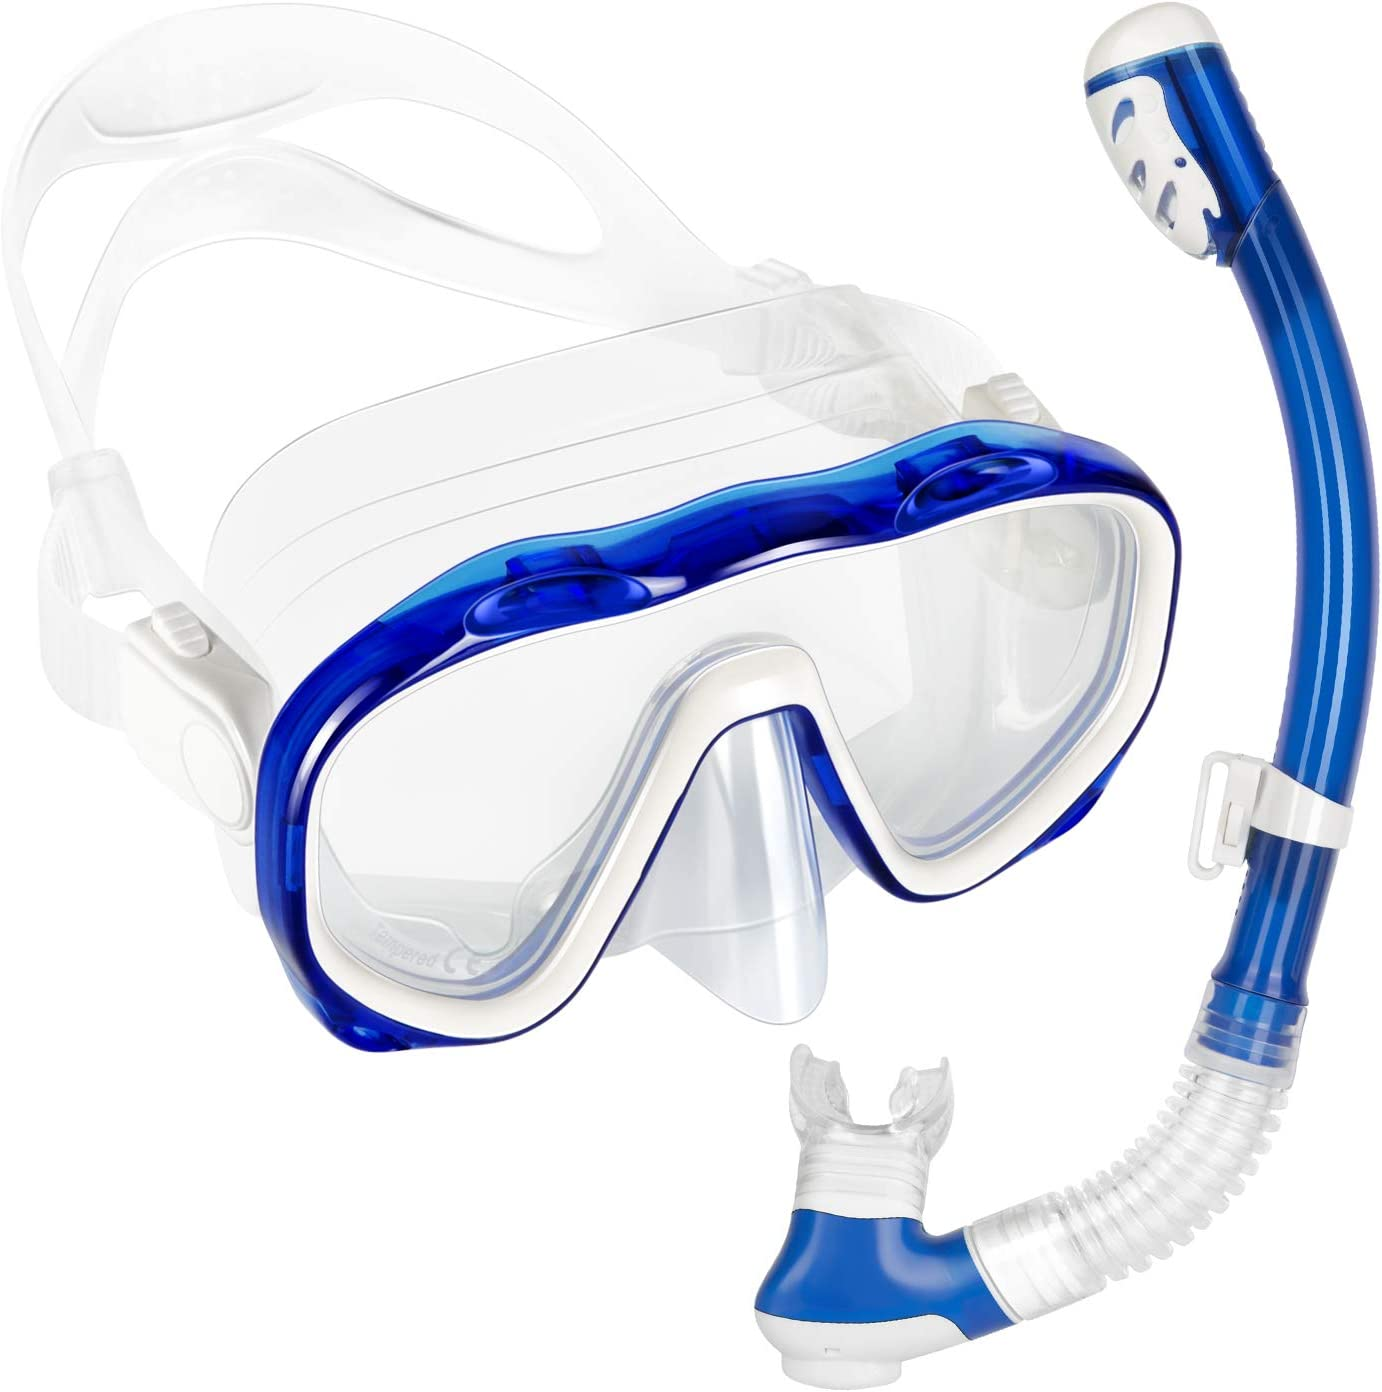 Easy Breathe CO2 Safe Full Face Snorkel Mask Adult and Kids Foldable 180˚ Panoramic View Flat Lens Snorkel Set Anti Leak Great Barrier MozT2 Snorkel Mask Full Face Anti Fog